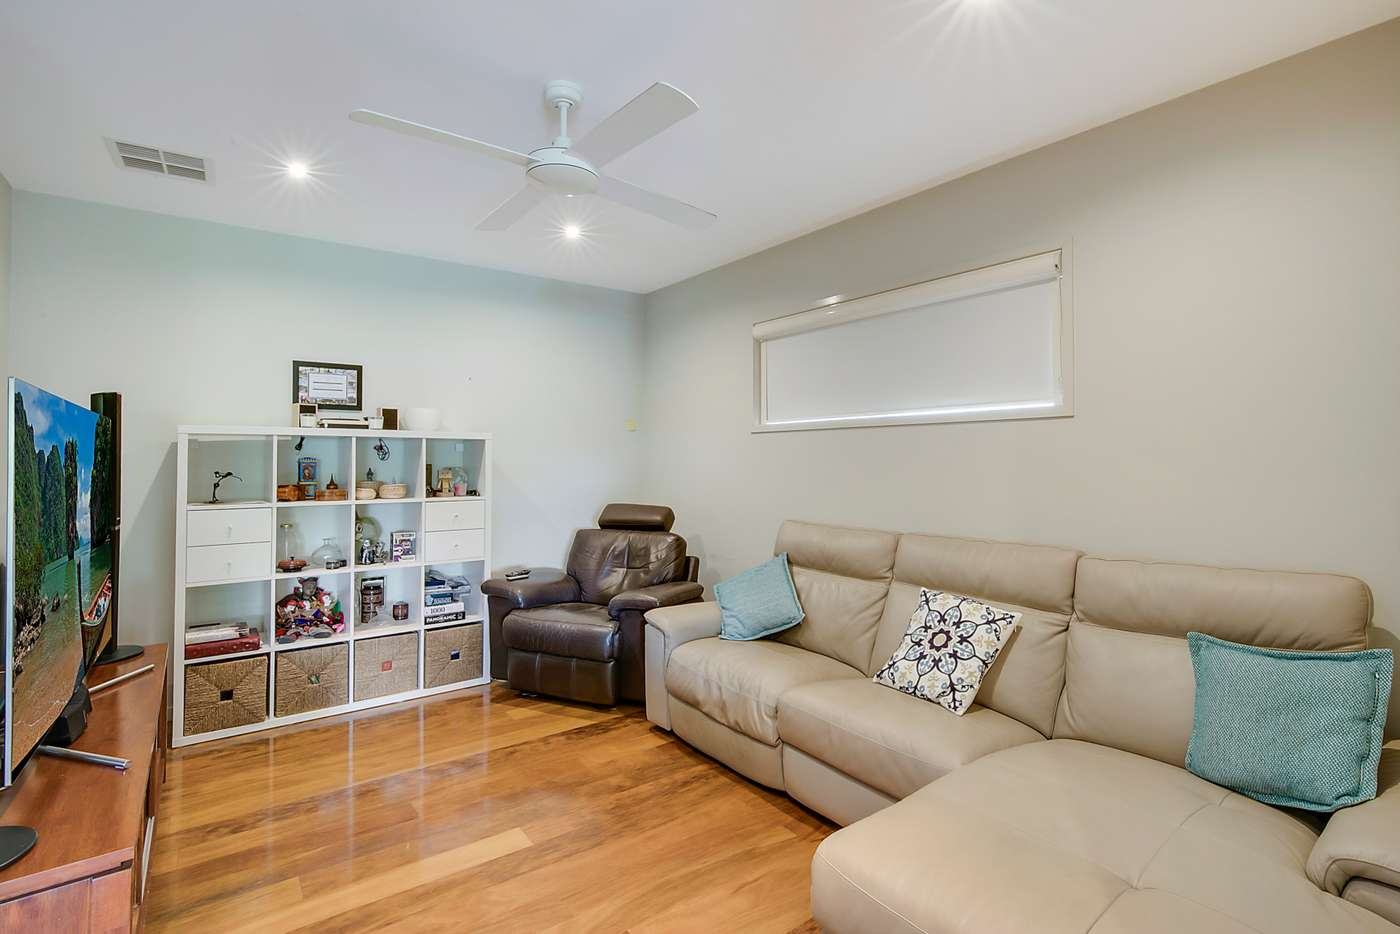 Sixth view of Homely house listing, 31 Gristock Street, Coorparoo QLD 4151